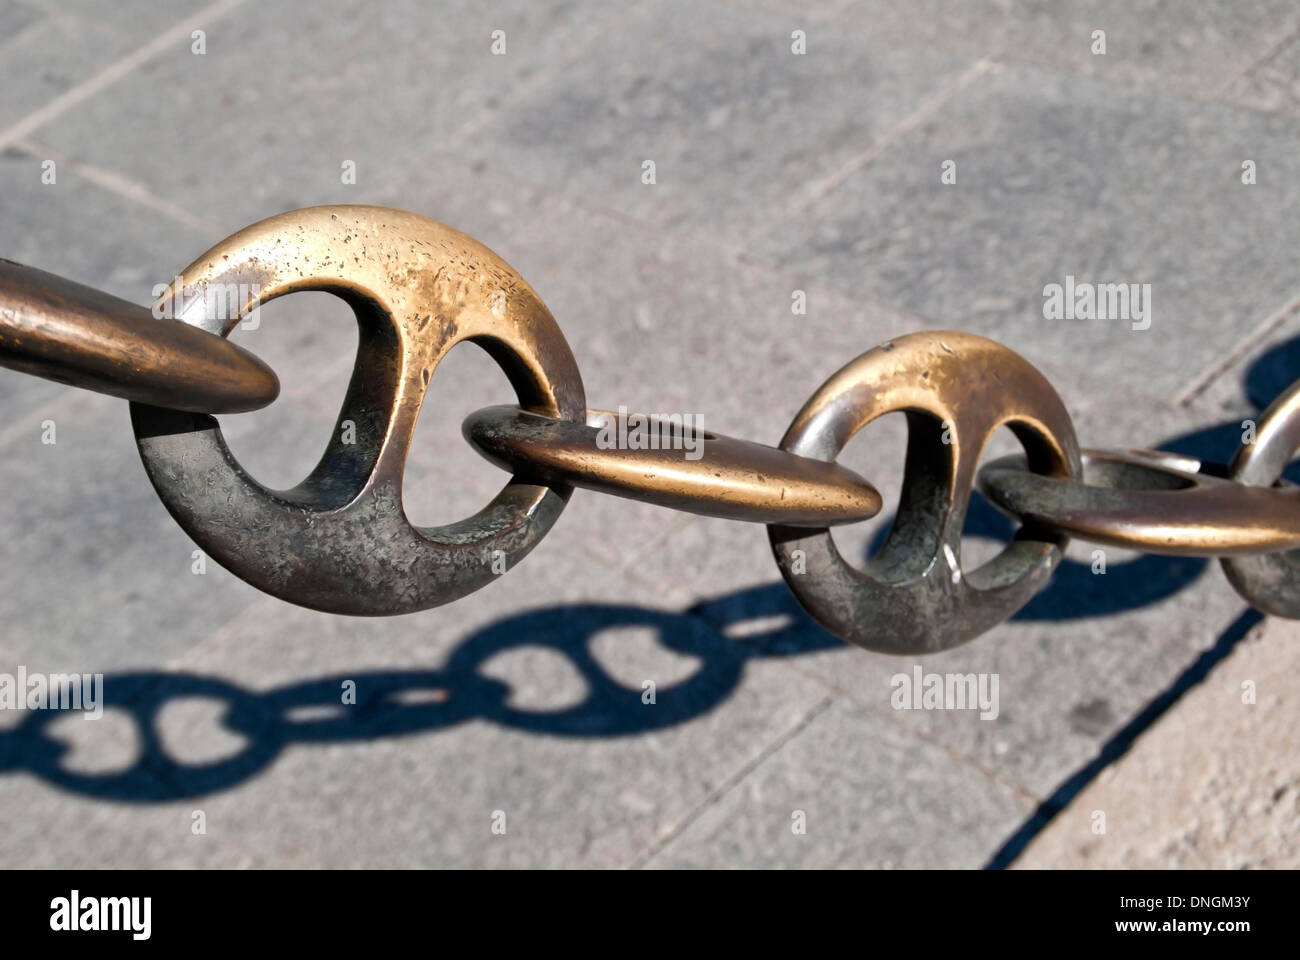 Chain, protected area - Stock Image